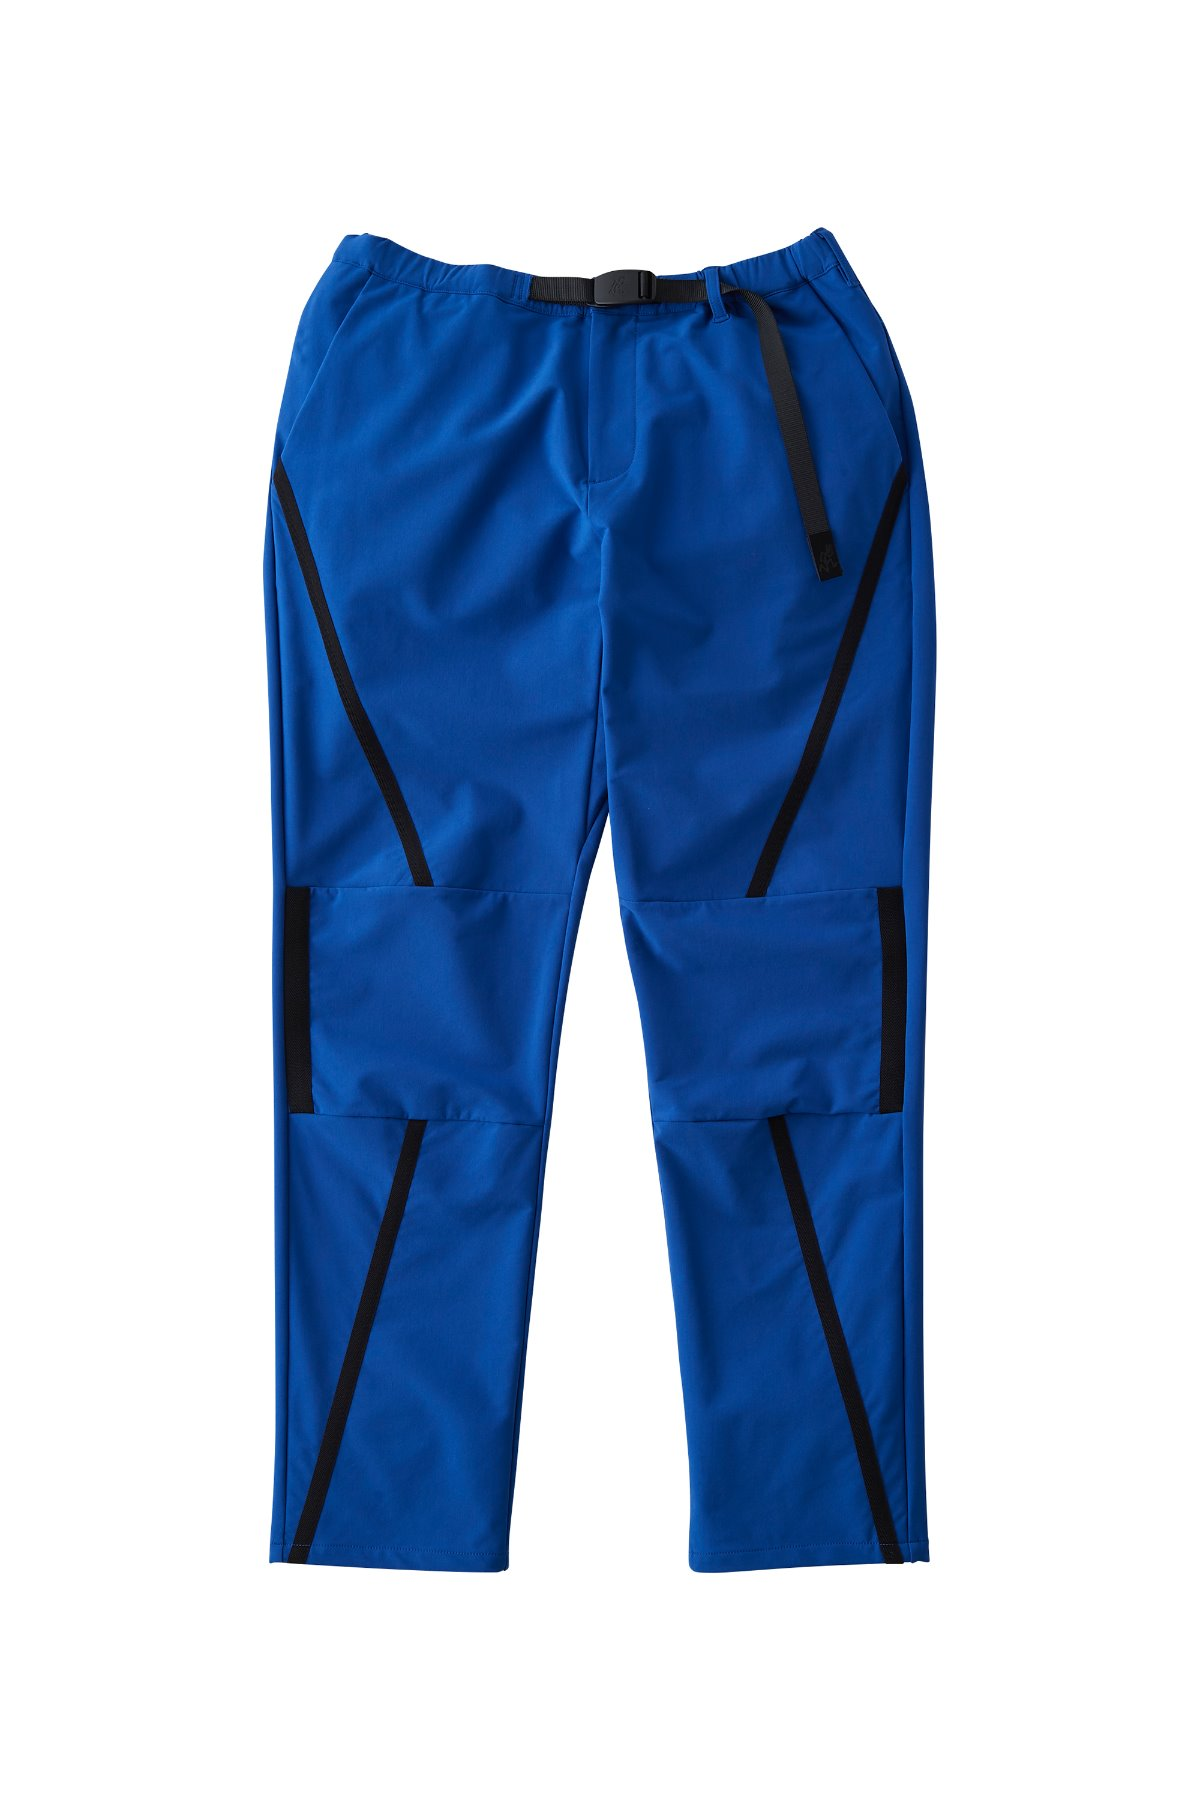 STORMFLEECE SWITCH PANTS BLUE